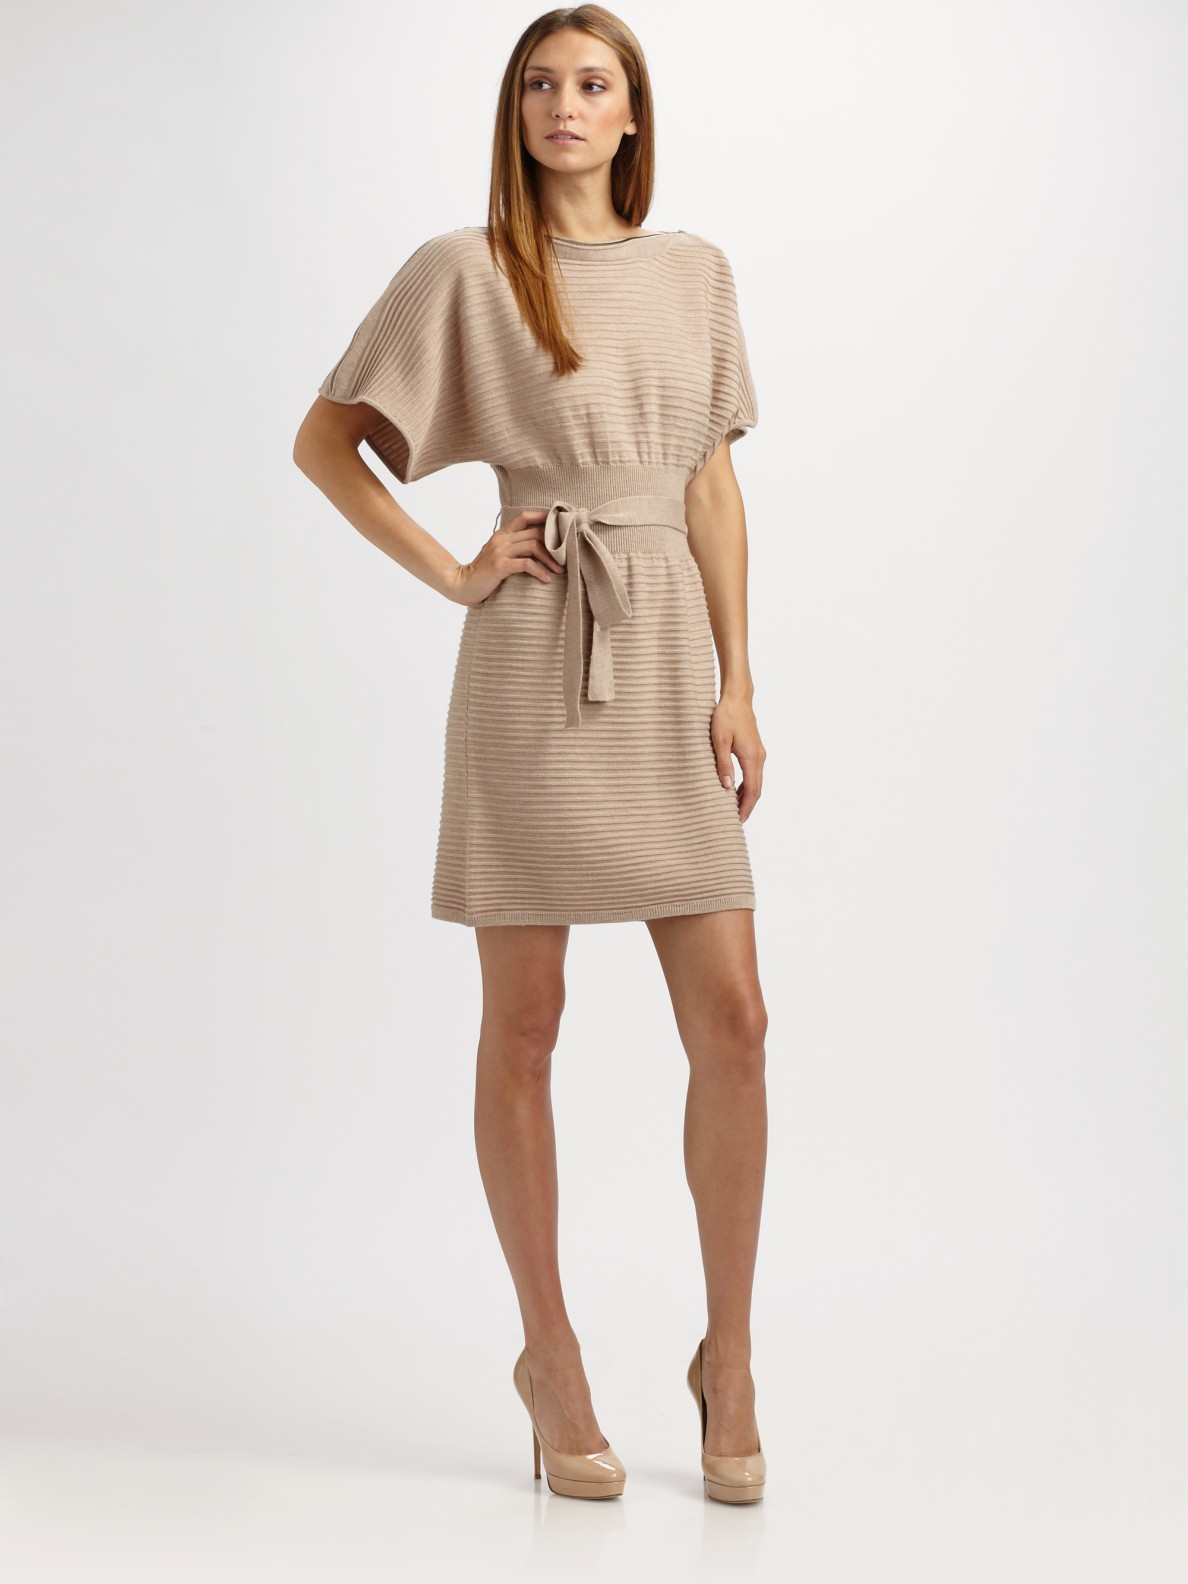 Laundry by Shelli Segal Sweater Dress in Oatmeal (Natural ...